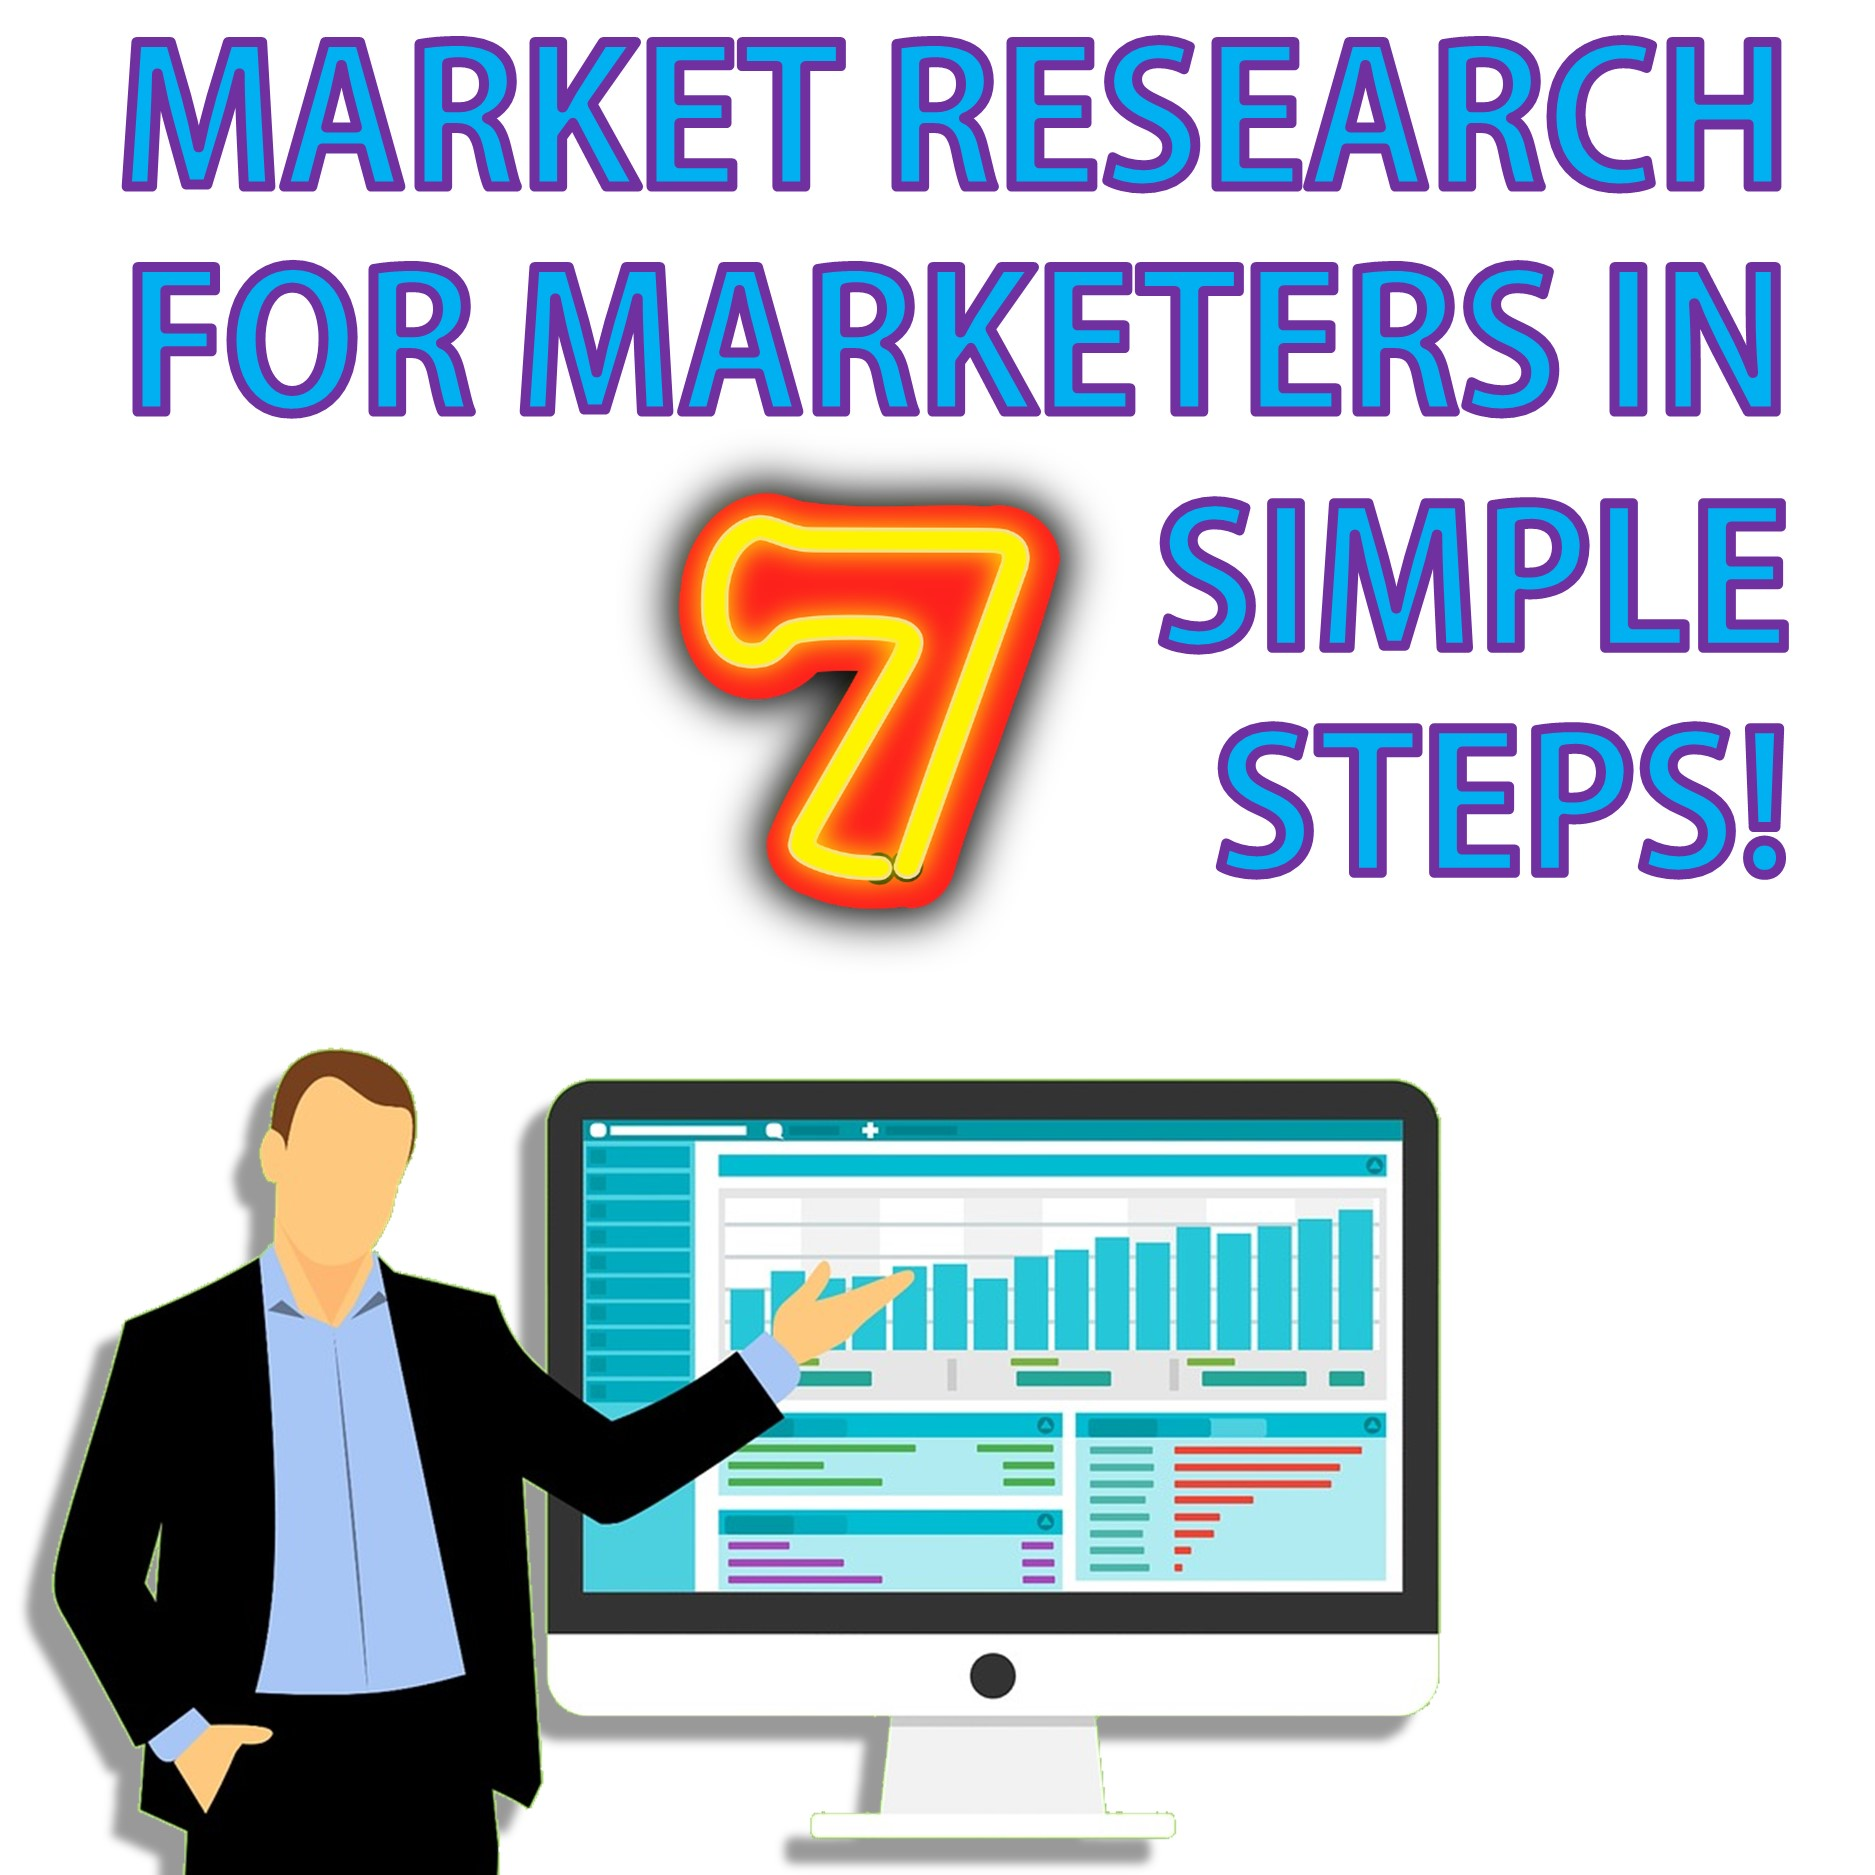 Marketing Research Made Simple: A 7-Step Approach To Get the Most Out of Your Marketing Research